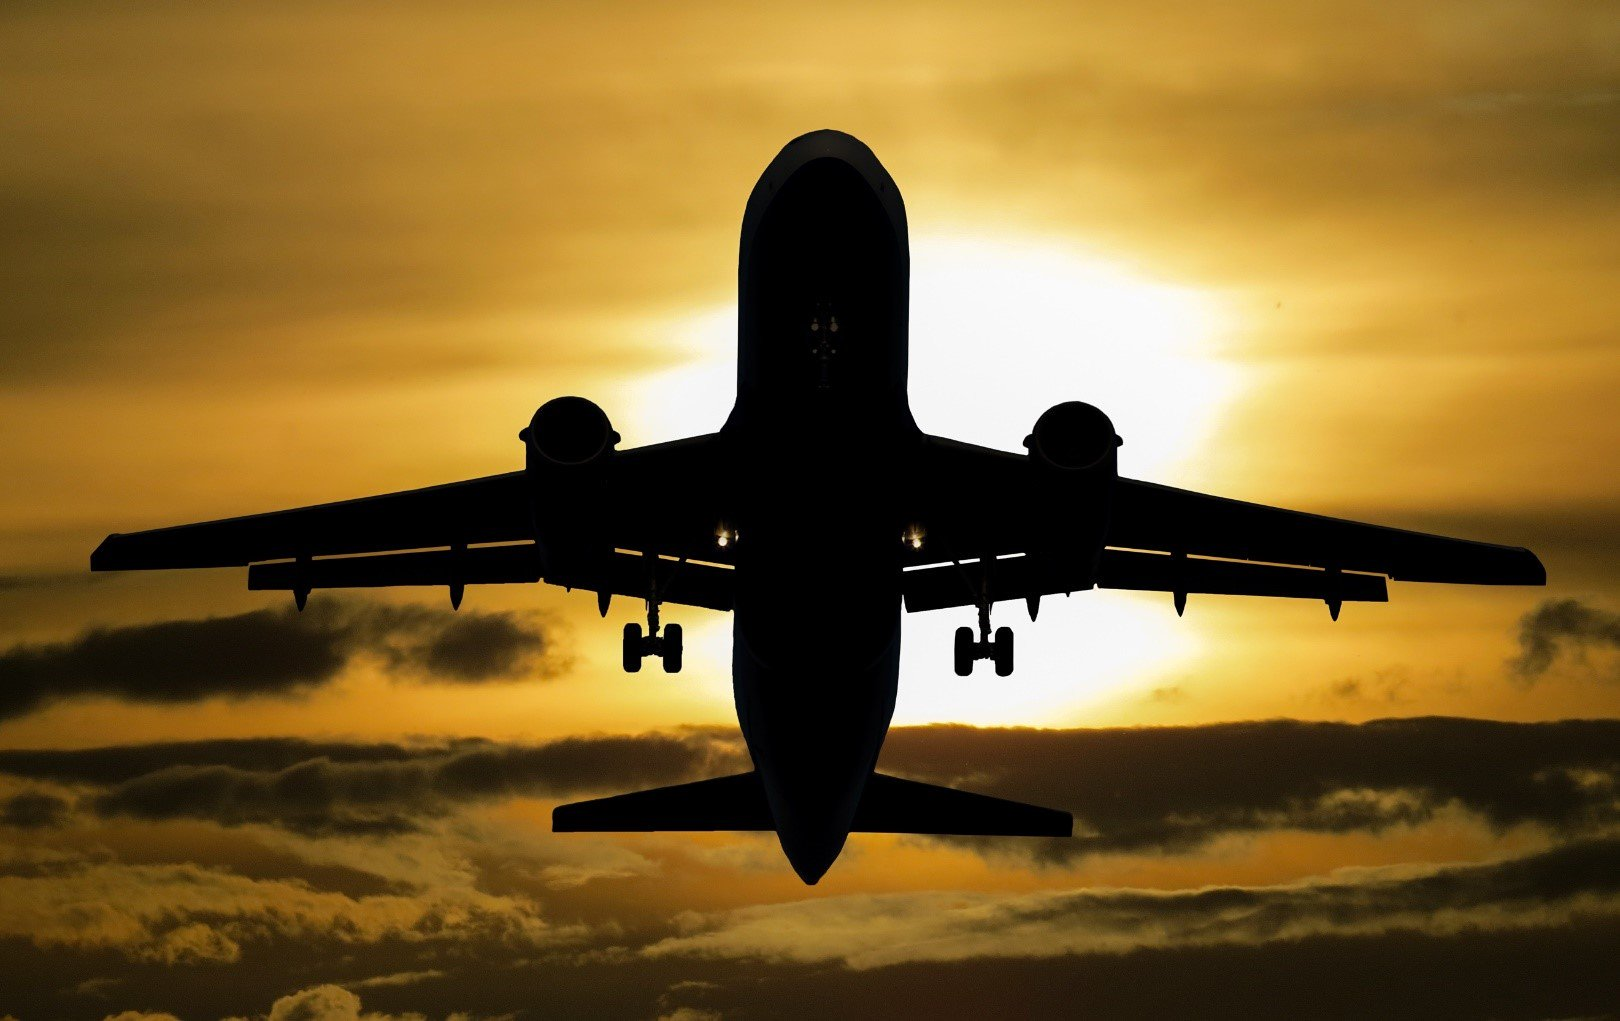 New Technologies and Materials for an Evolving Aerospace Industry